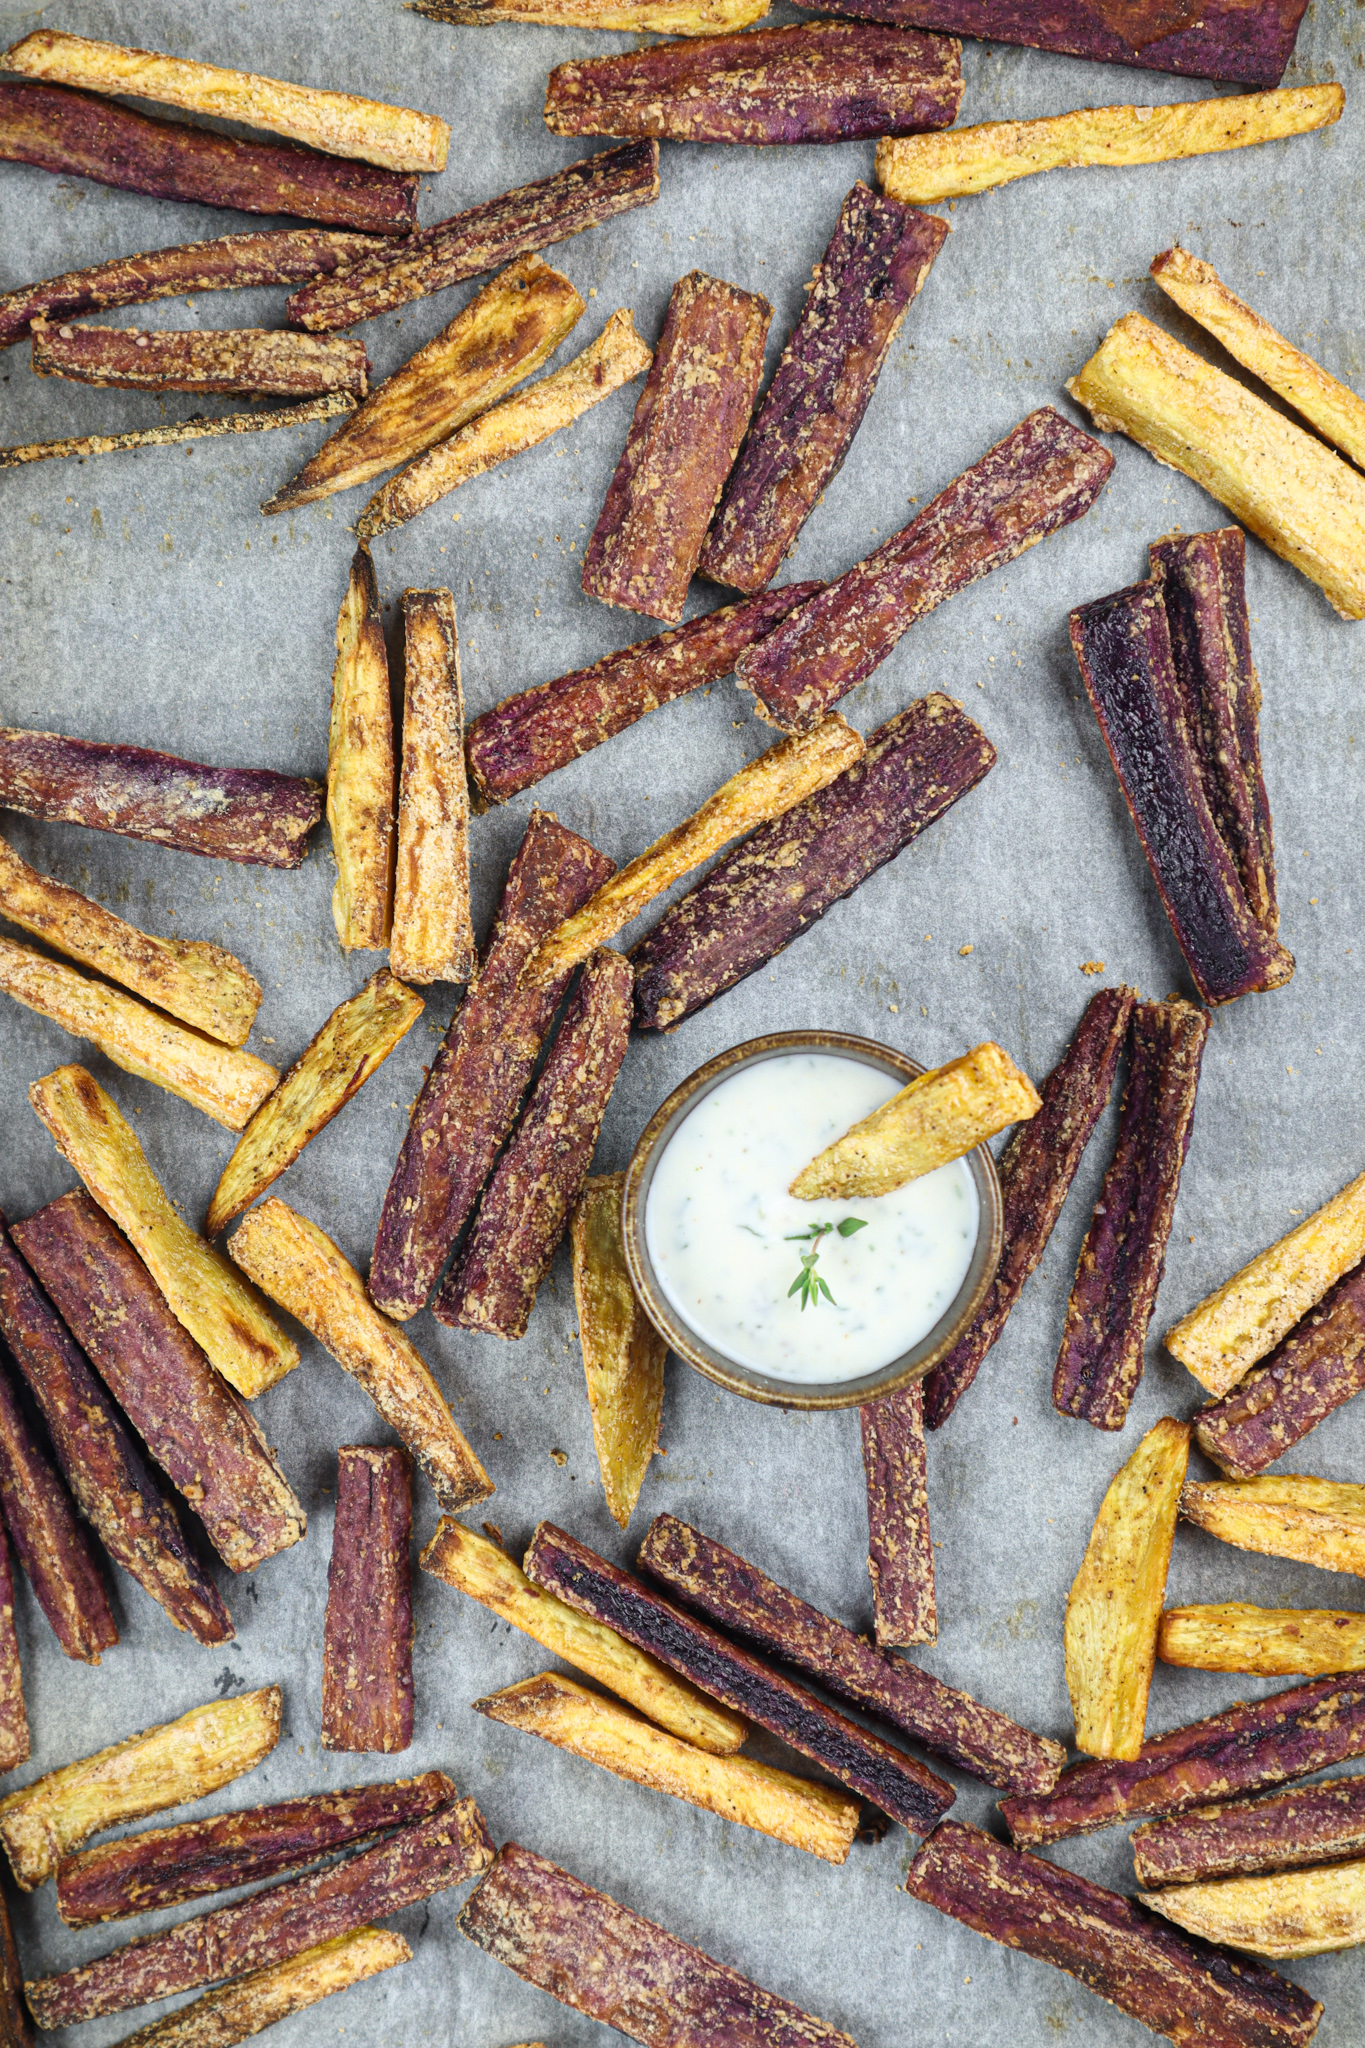 When craving for fries, these oven baked sweet potato fries are not only healthy but also super delicious, guaranteed crispy and flavorful.